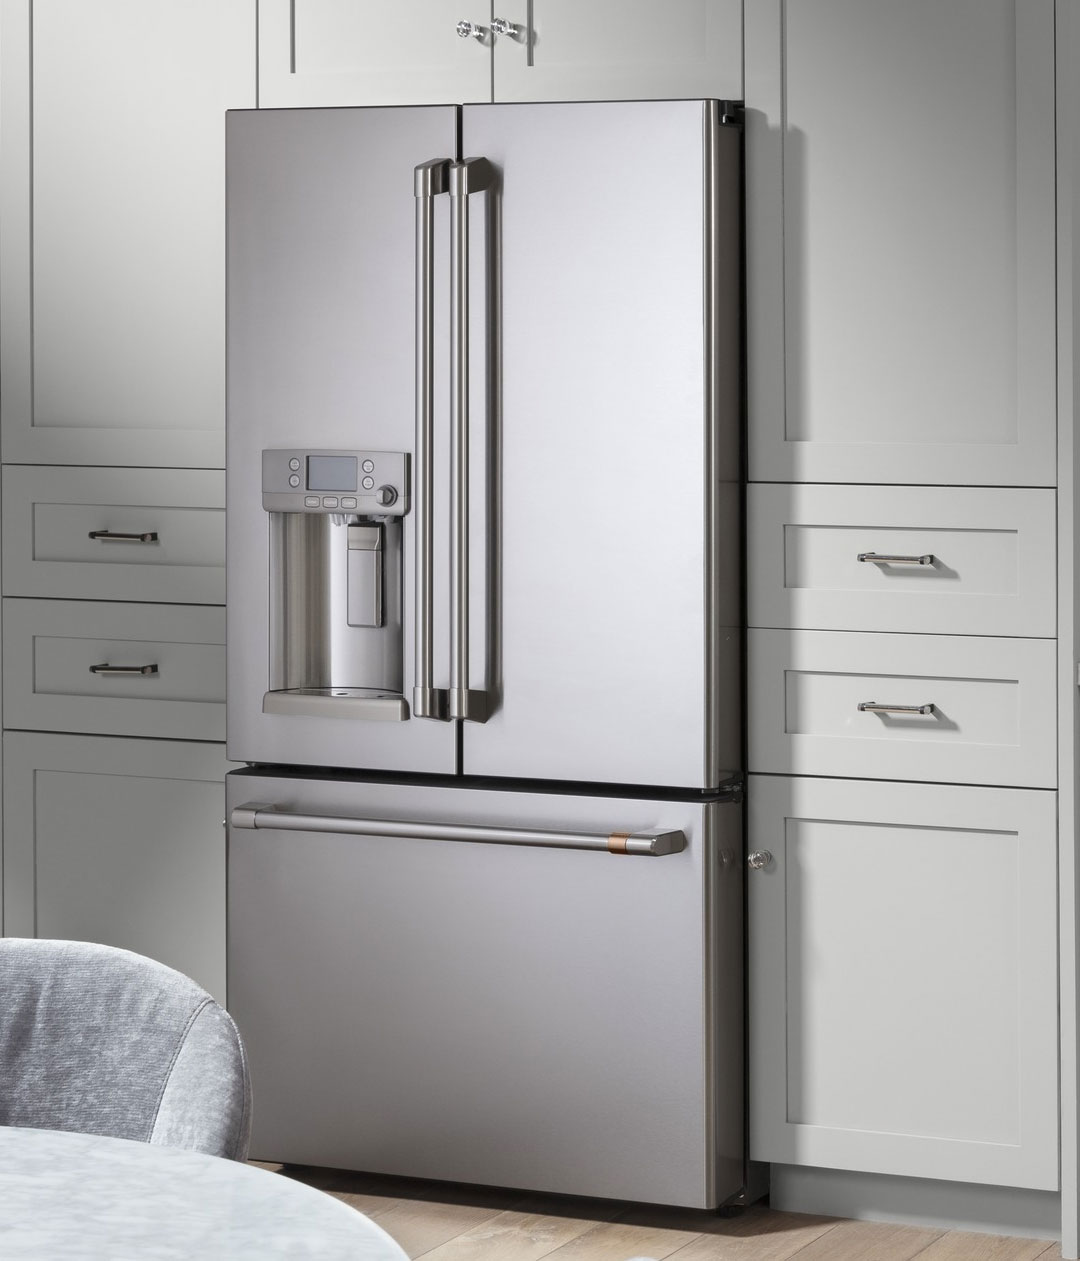 stainless steel refrigerator with grey cabinets